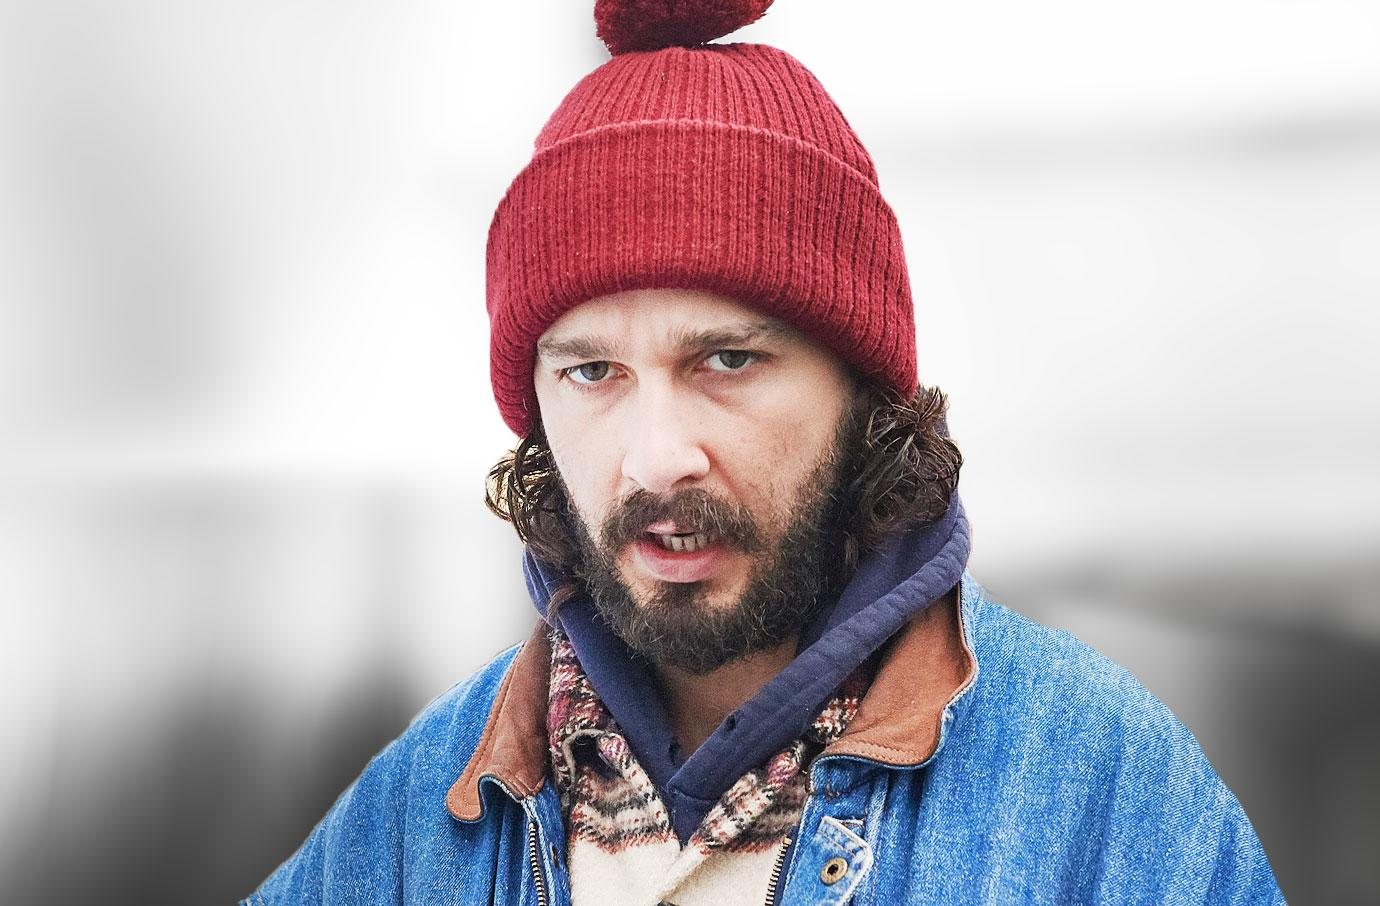 Shia LaBeouf Arrested For Disorderly Conduct